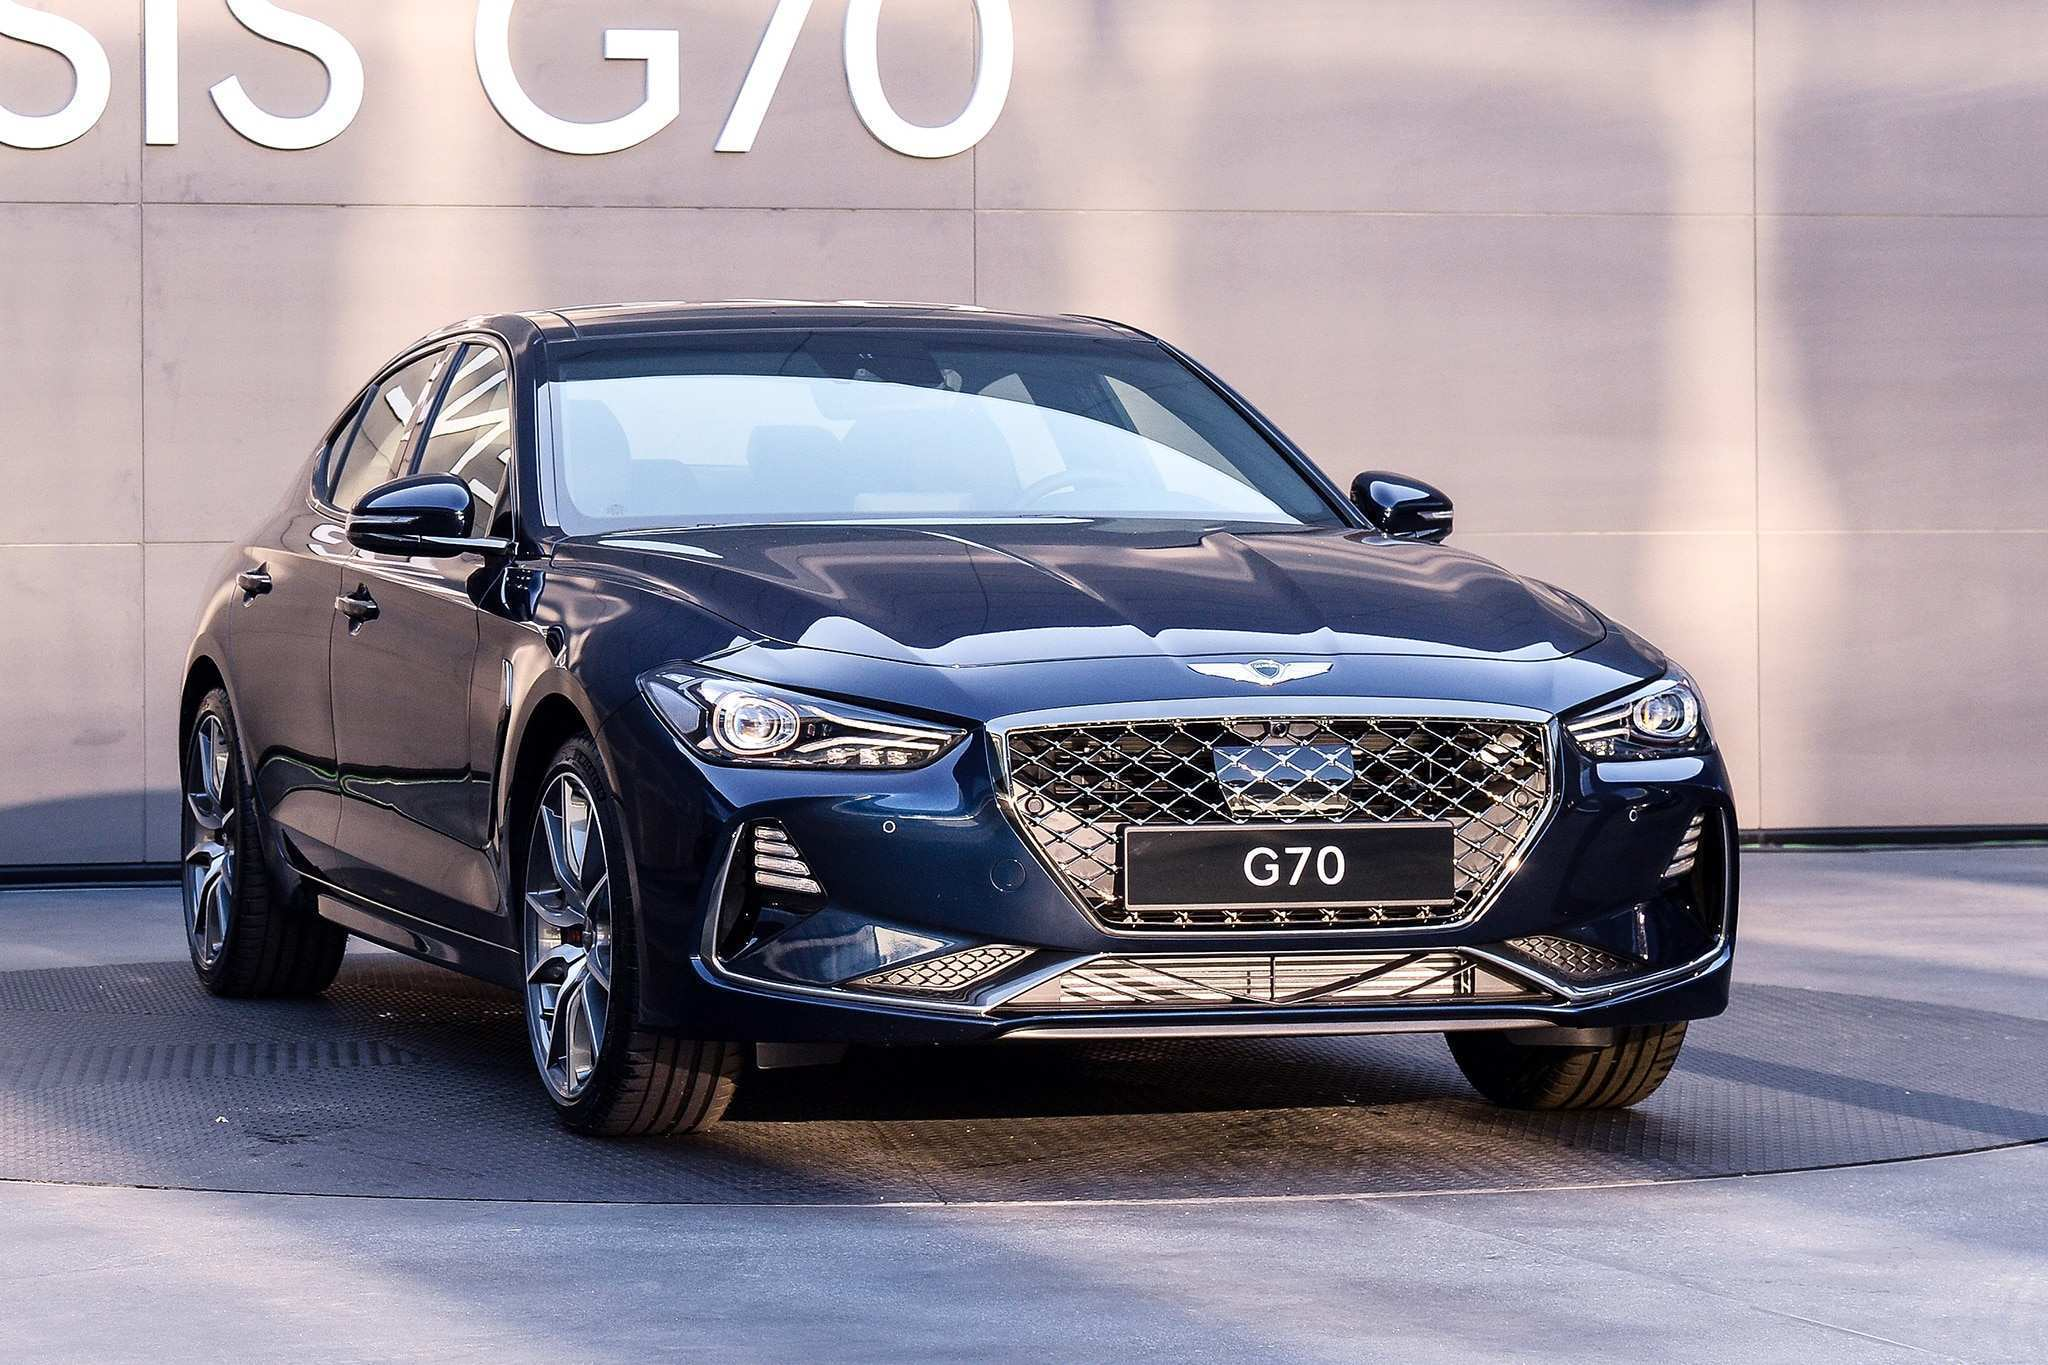 69 All New 2019 Genesis G70 Price Release Date with 2019 Genesis G70 Price